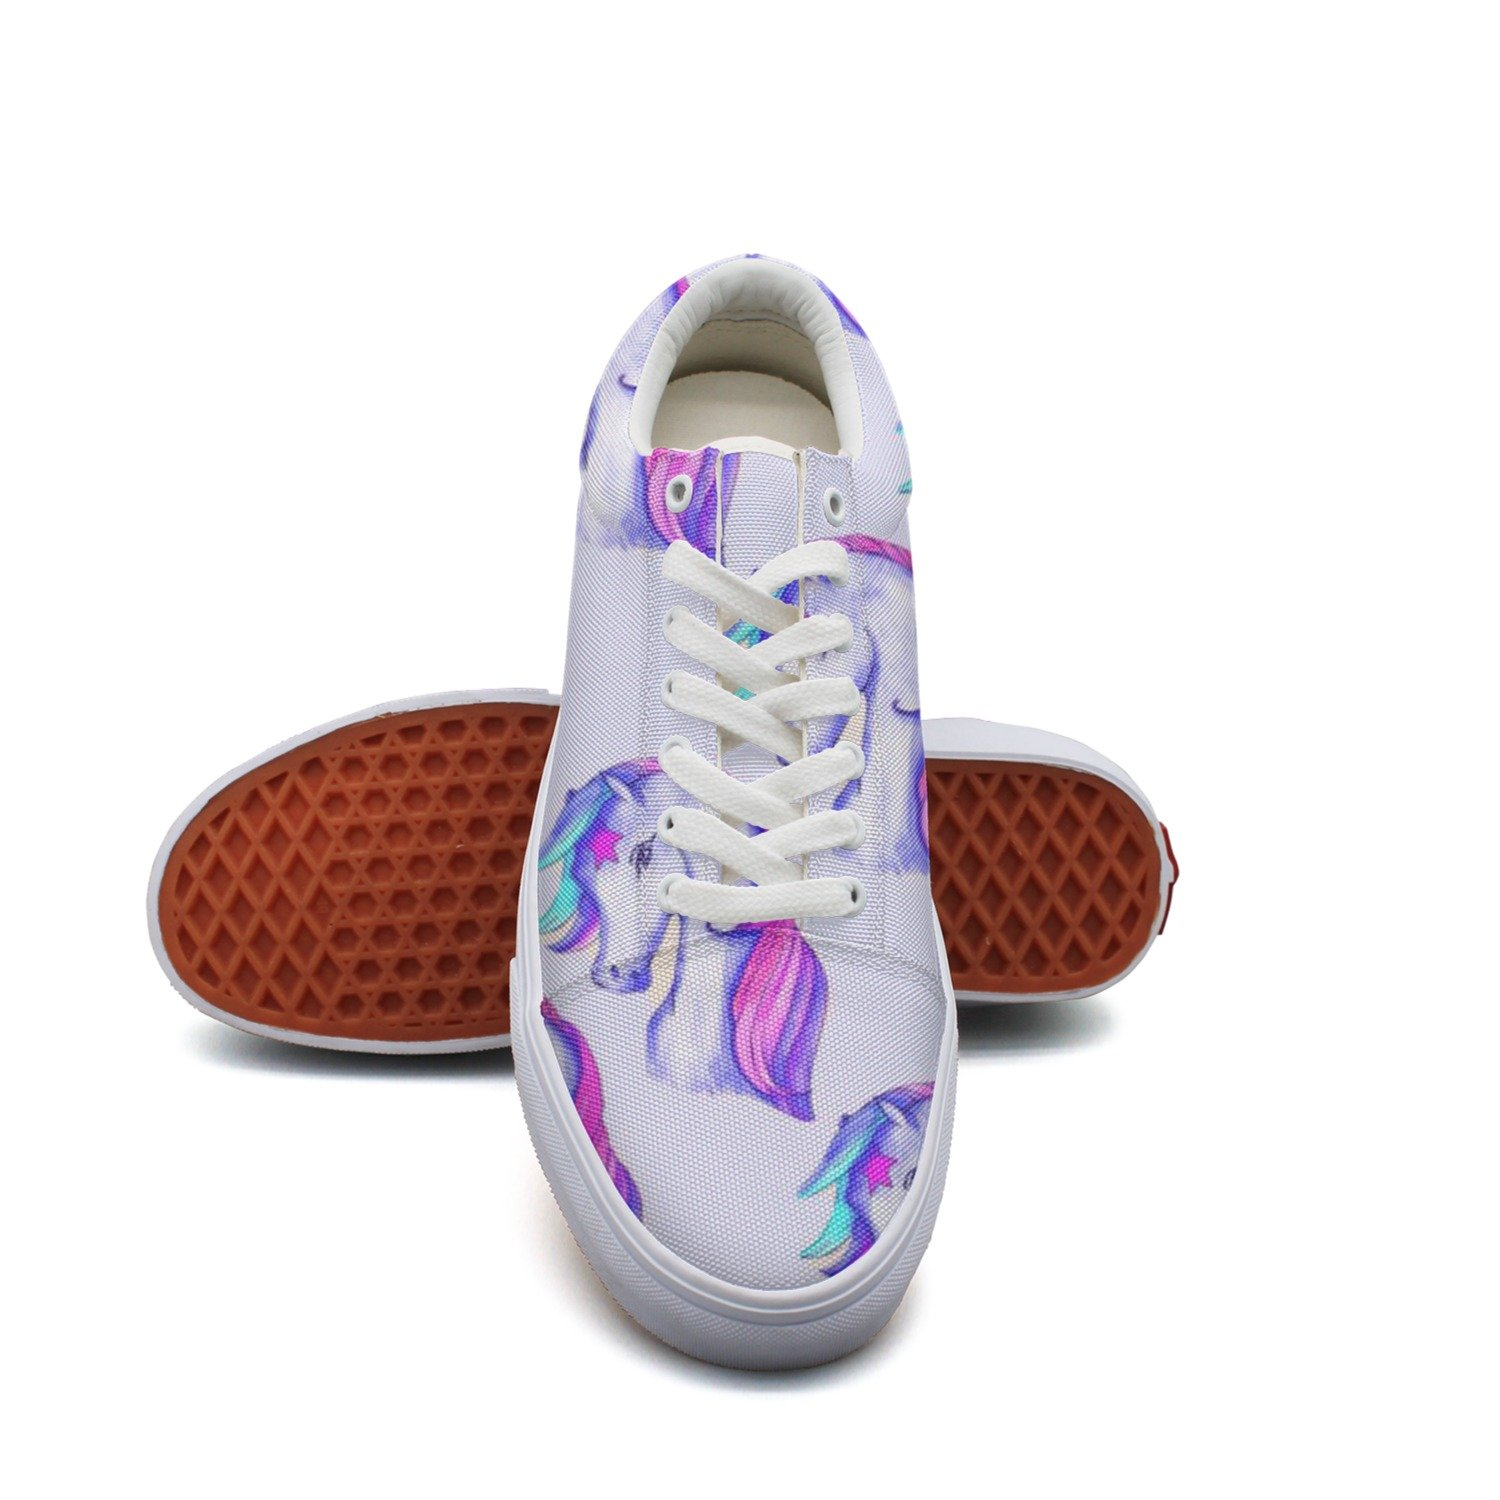 Ouxioaz Womens Action Shoes Watercolor Unicorn Canvas Tennis Shoes